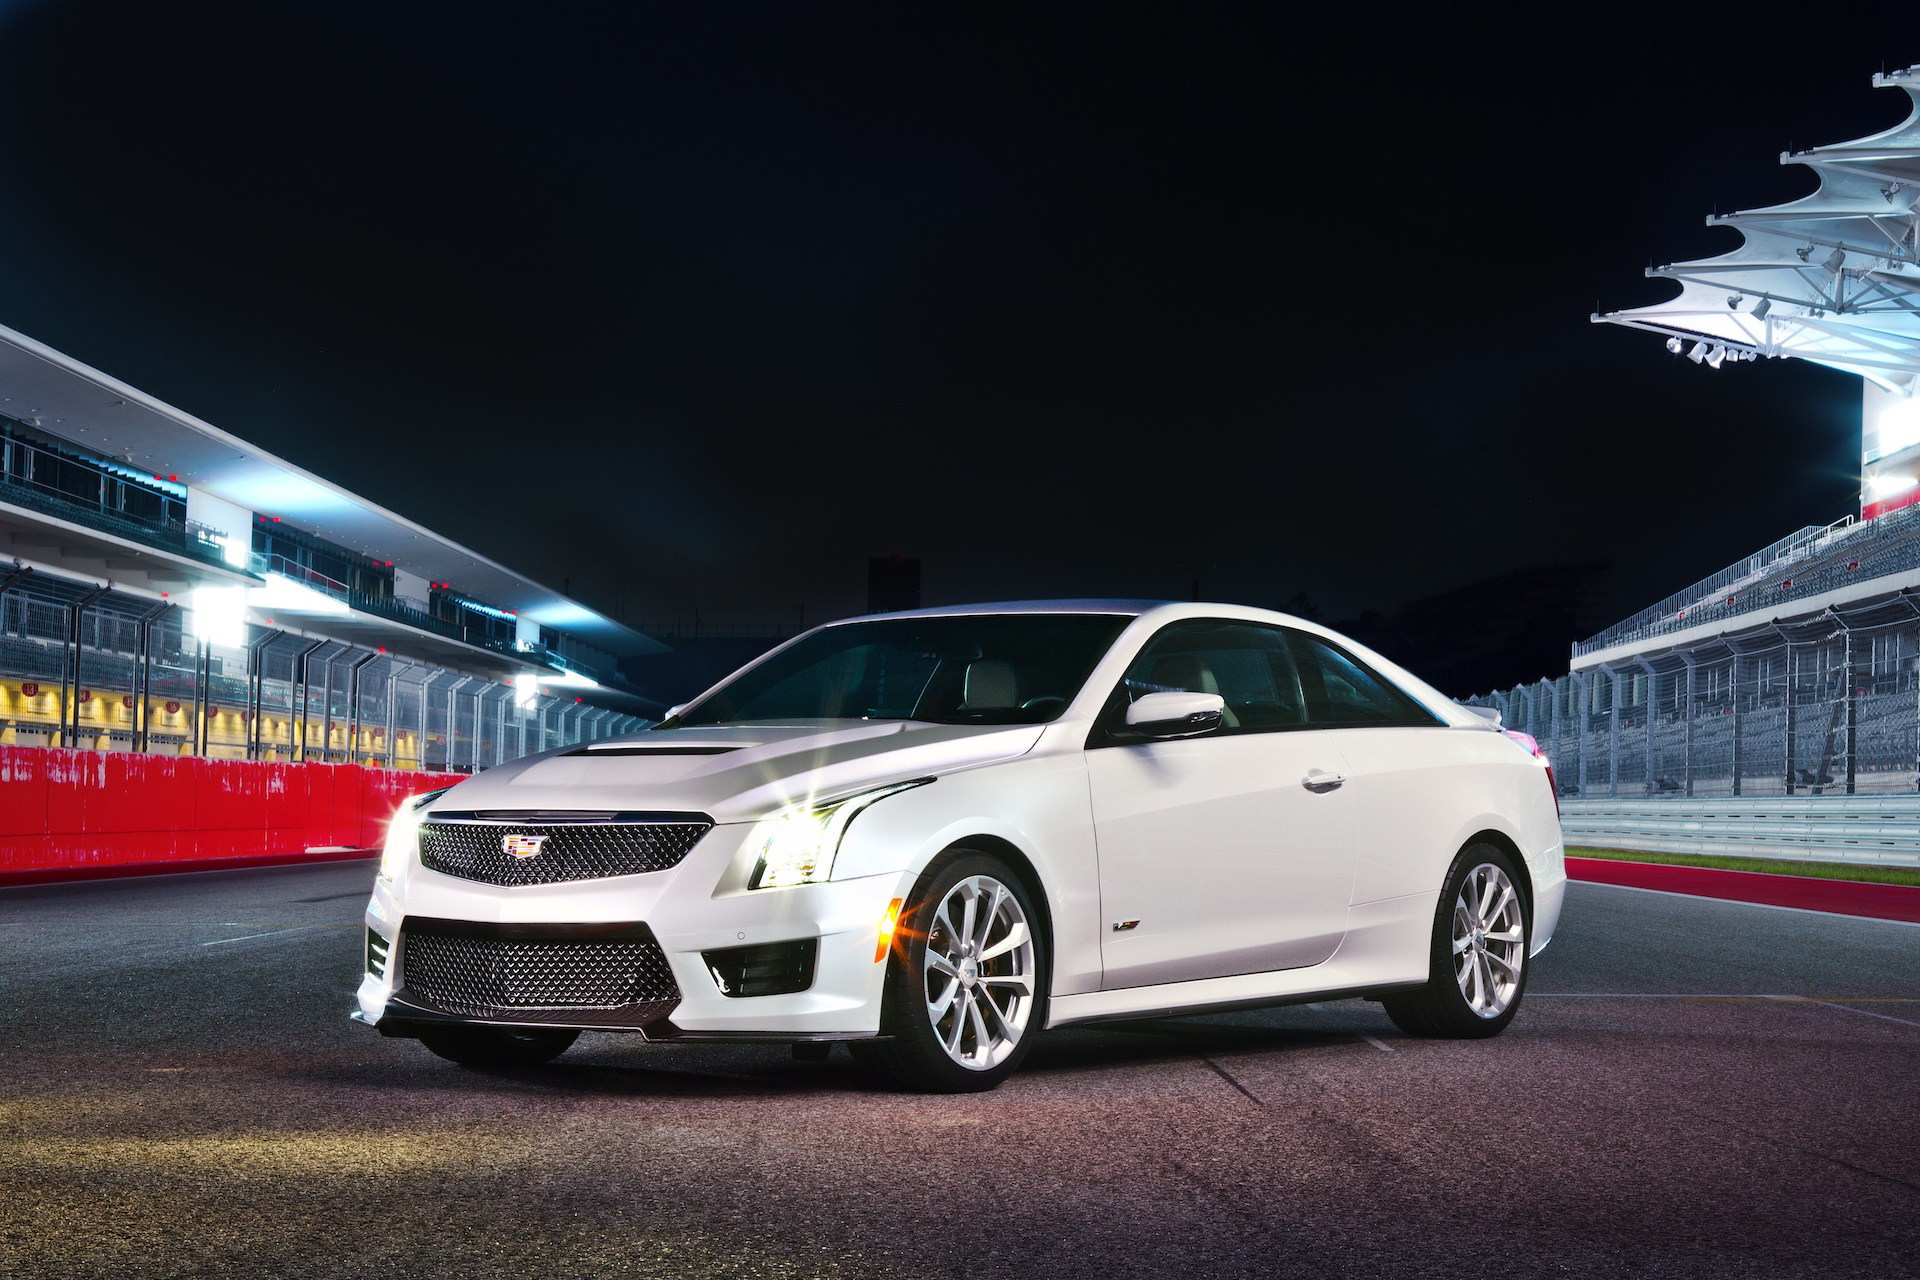 55 Concept of 2019 Cadillac Cts V Coupe Rumors by 2019 Cadillac Cts V Coupe